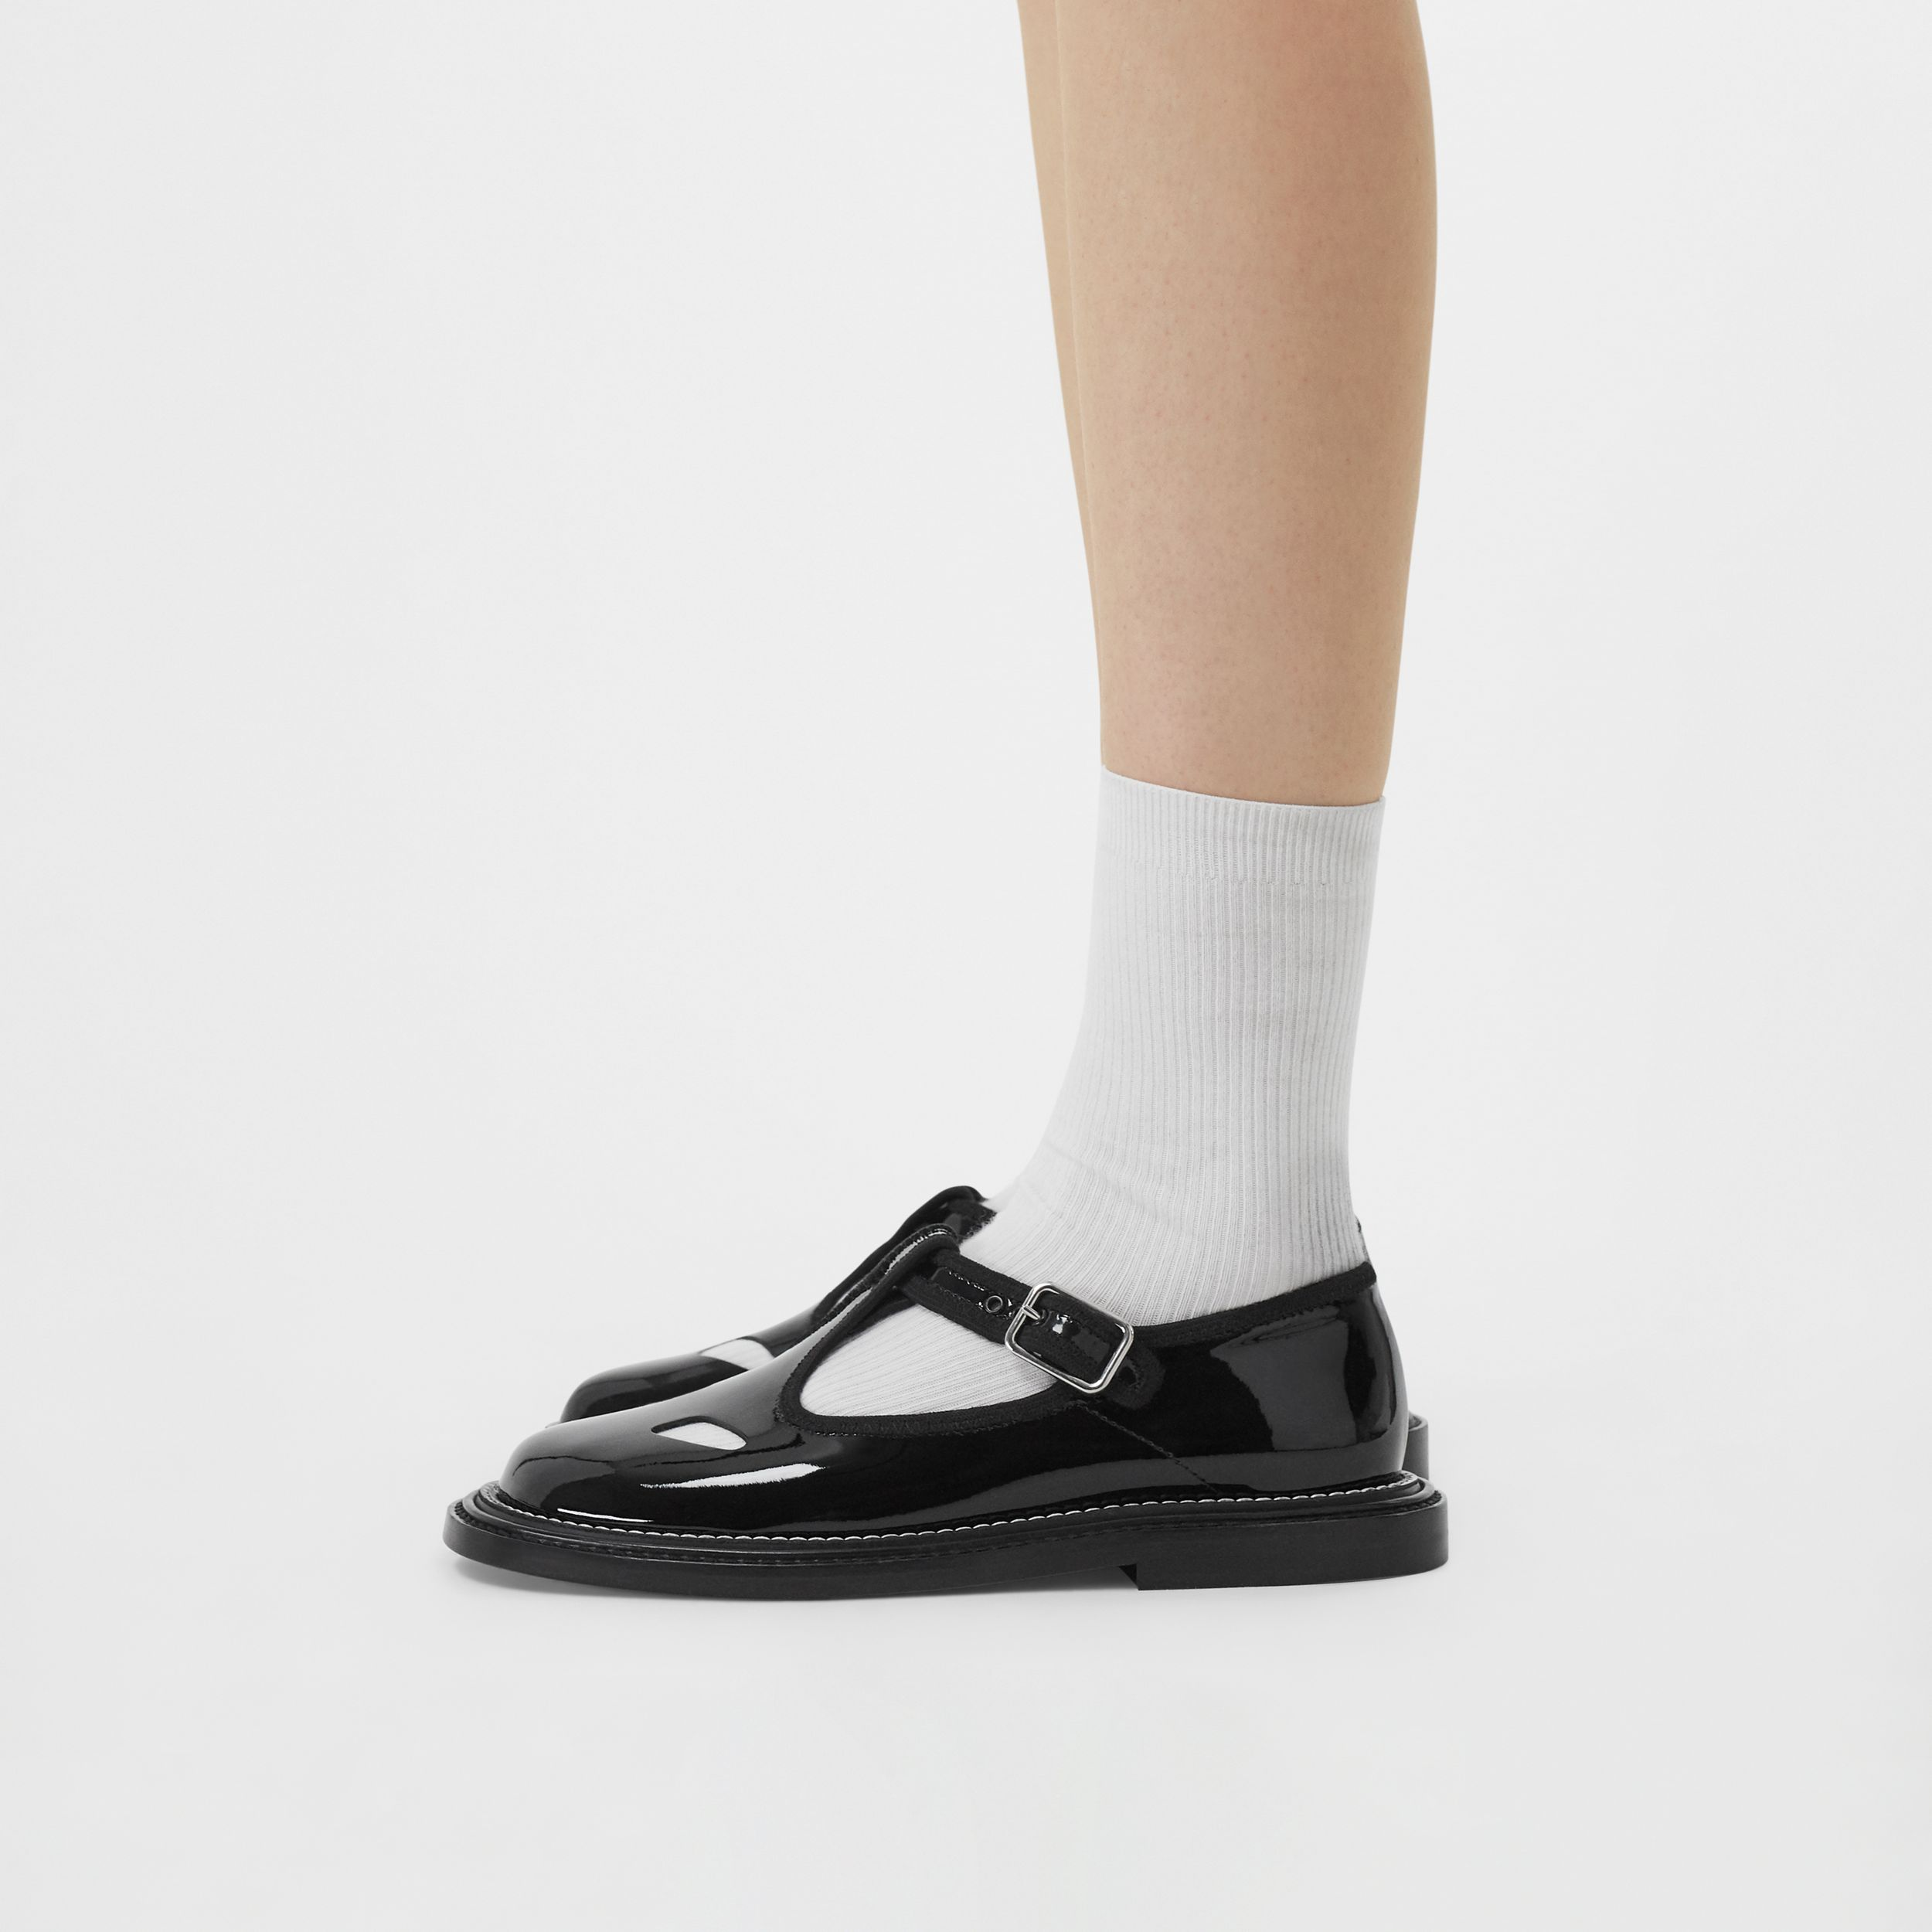 Patent Leather T-bar Shoes in Black - Women | Burberry Singapore - 3